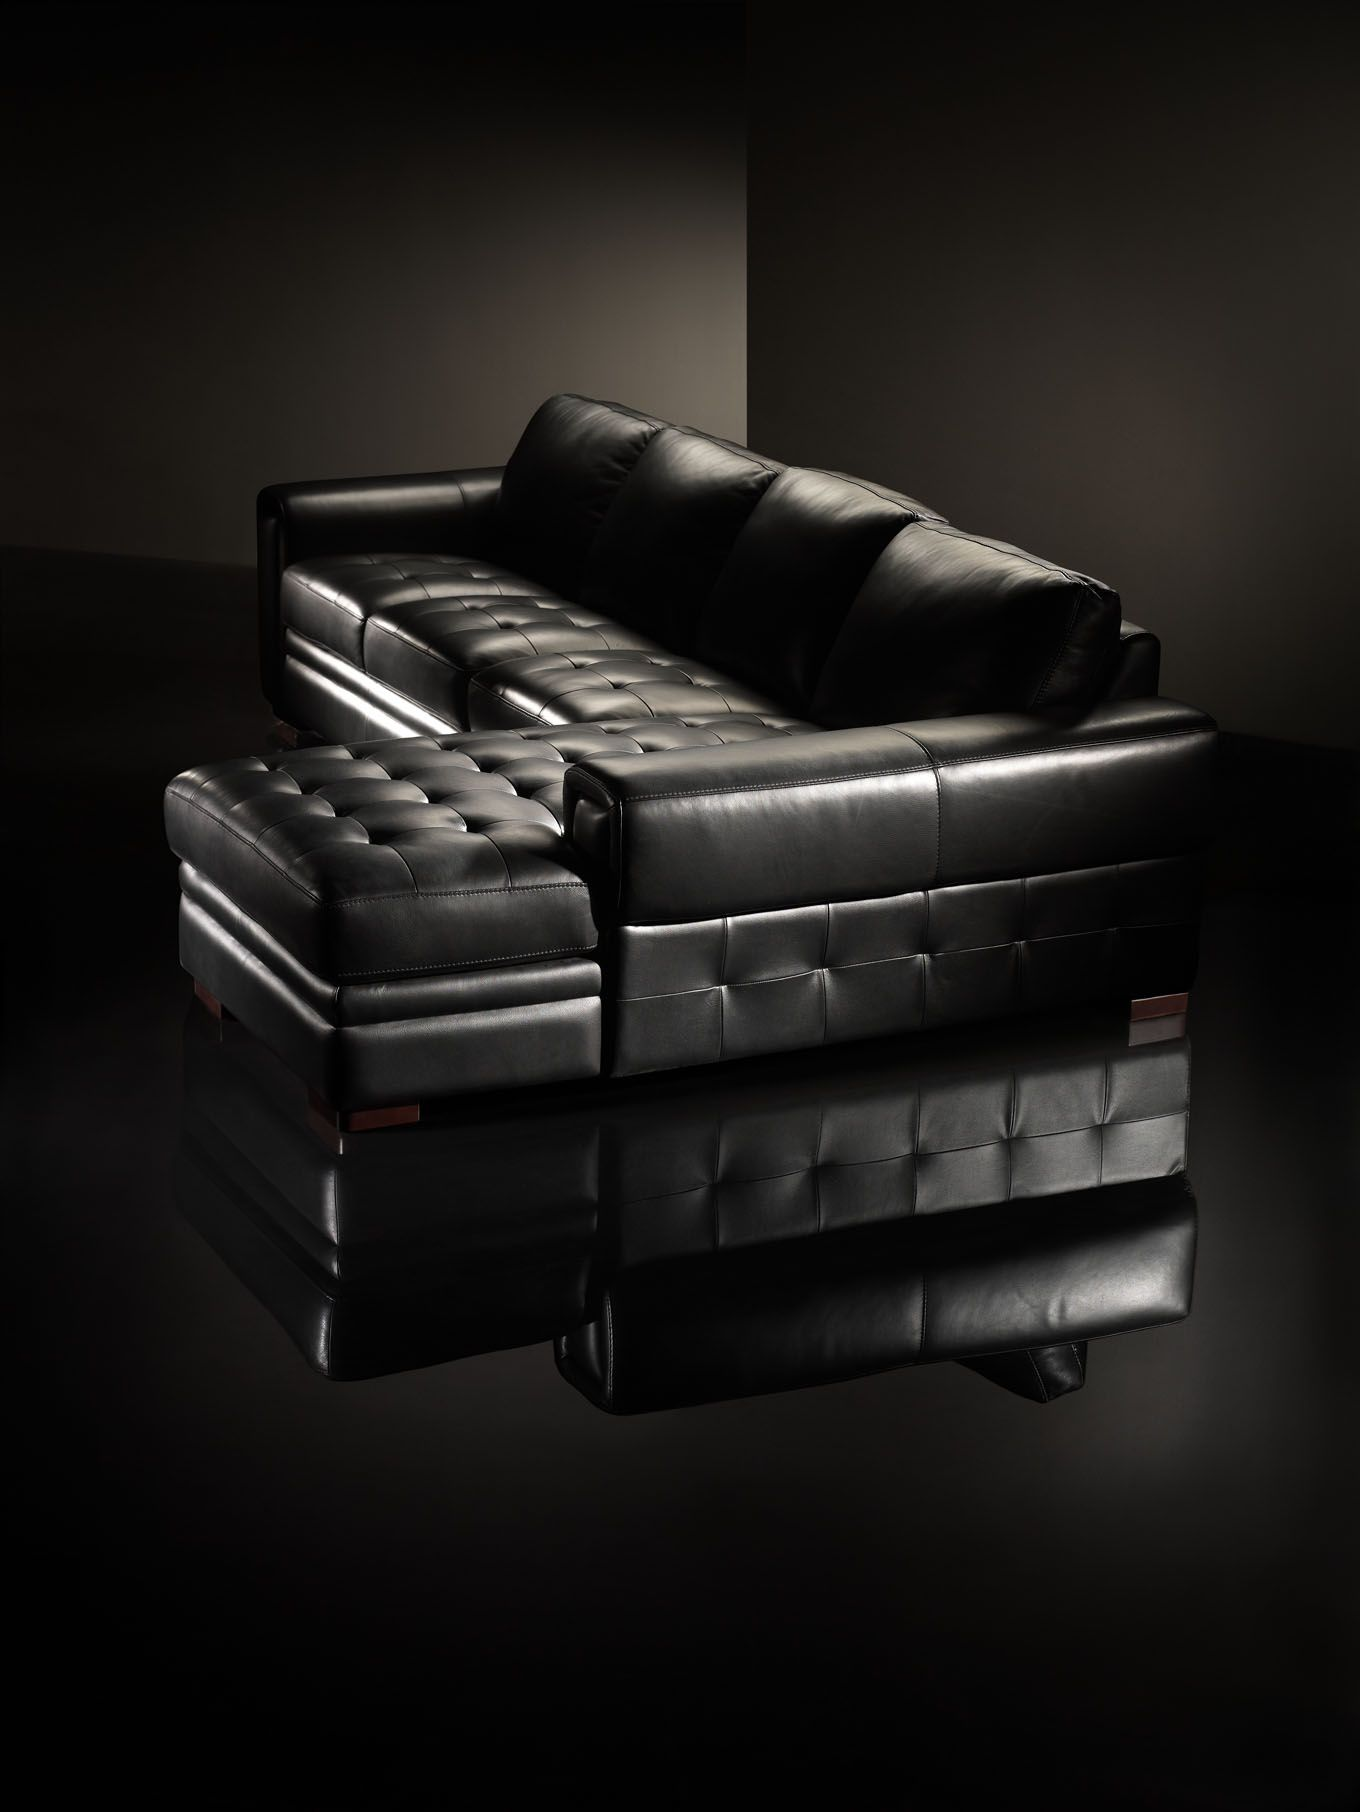 La Z Boy Zane Black Leather Sectional Research for possible